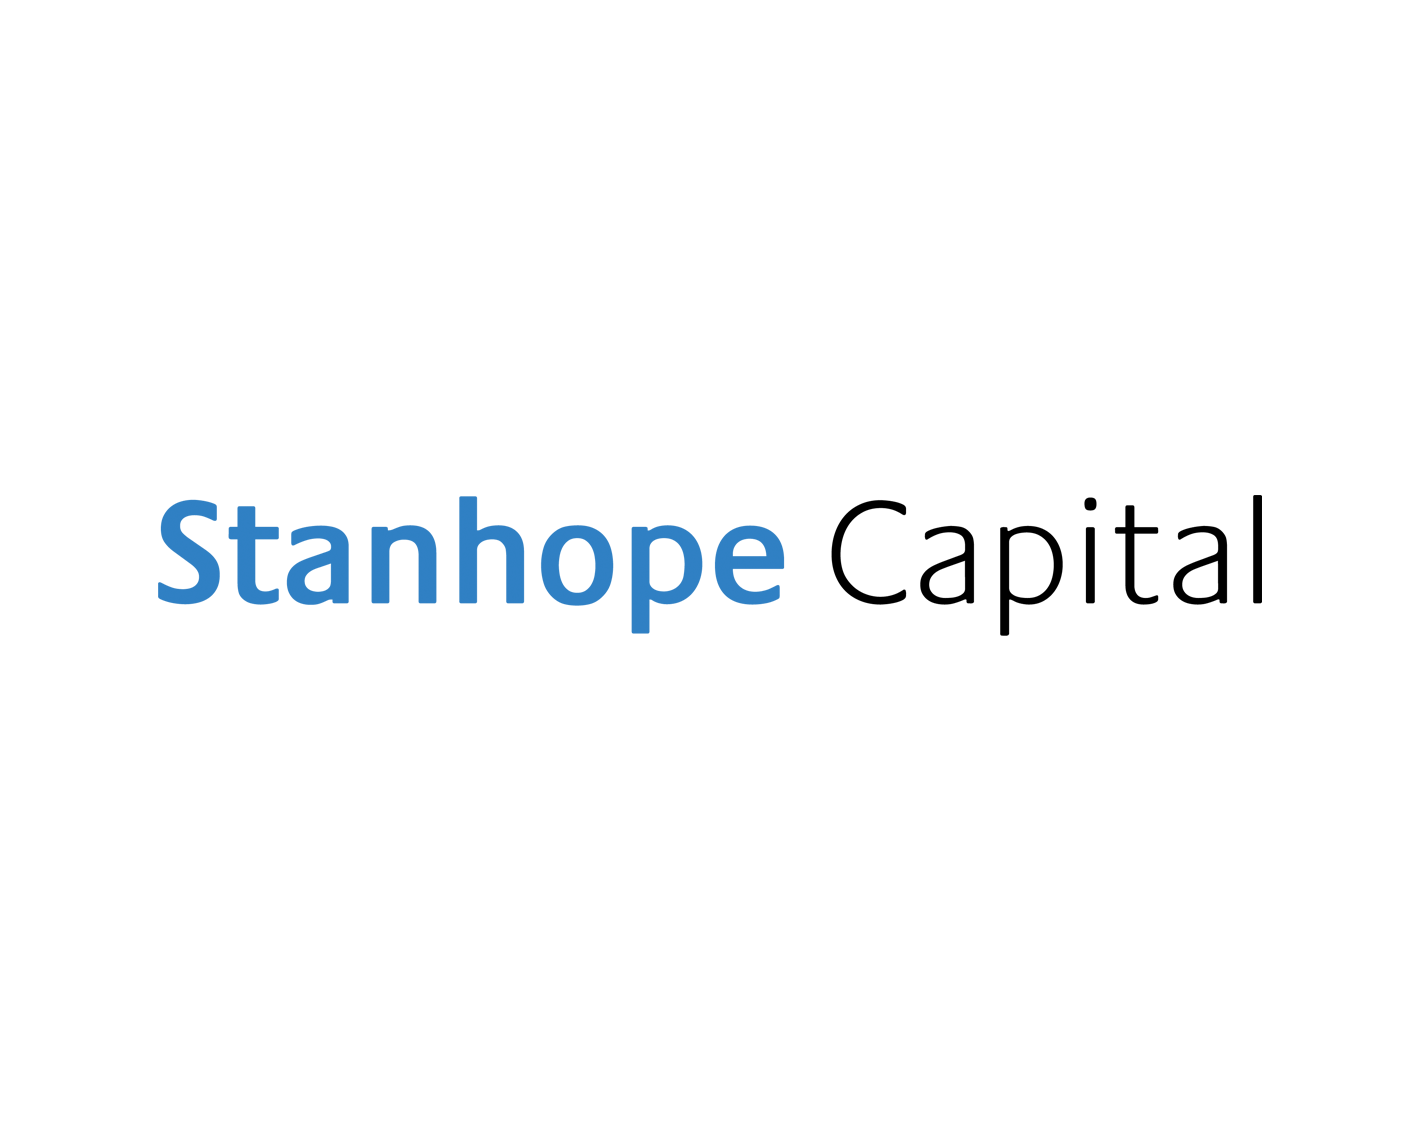 Stanhope Capital logo